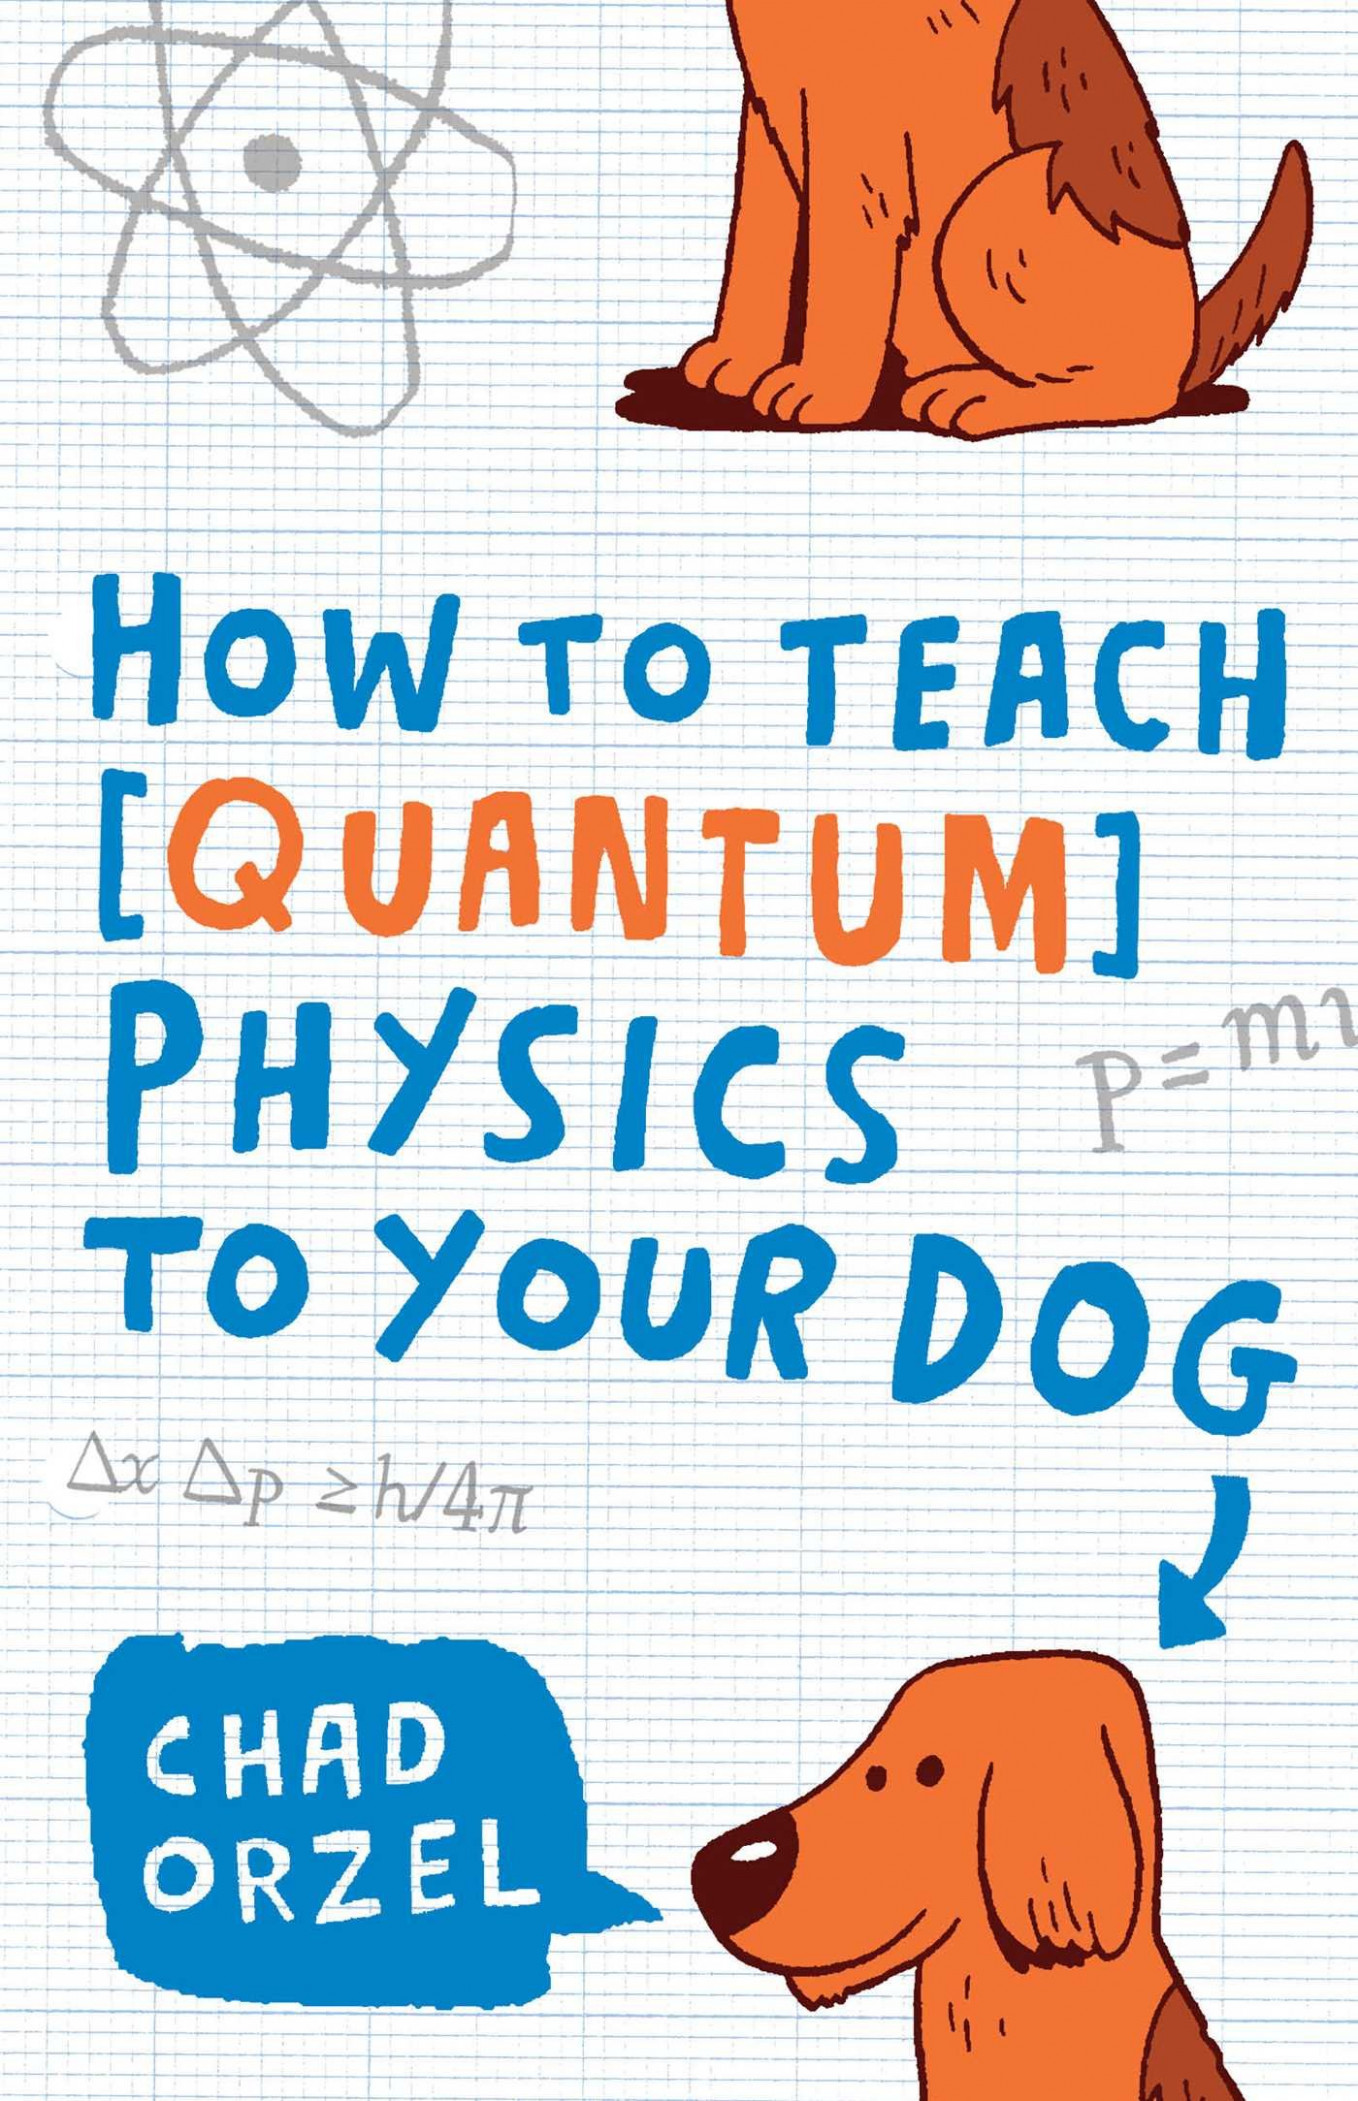 How to Teach Quantum Physics to Your Dog: Chad Orzel: 18 ..